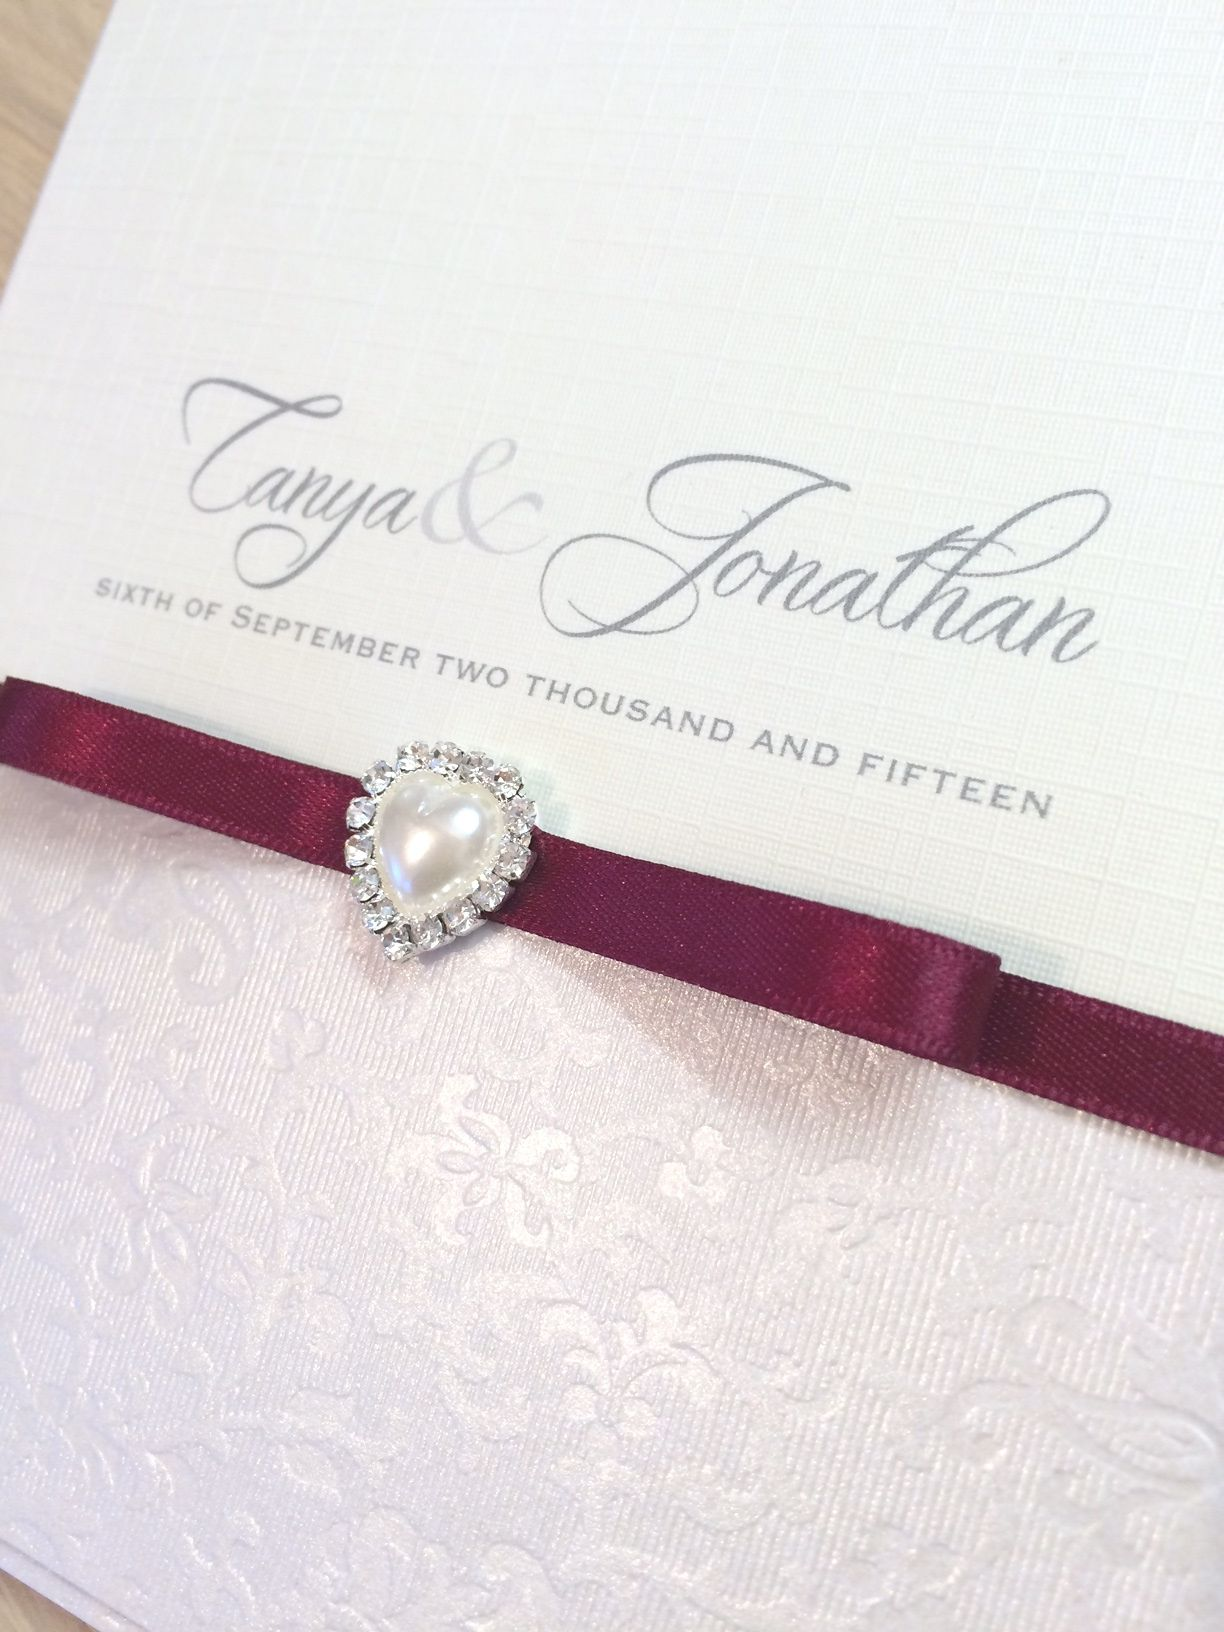 Invitation with small heart pearl and ribbon